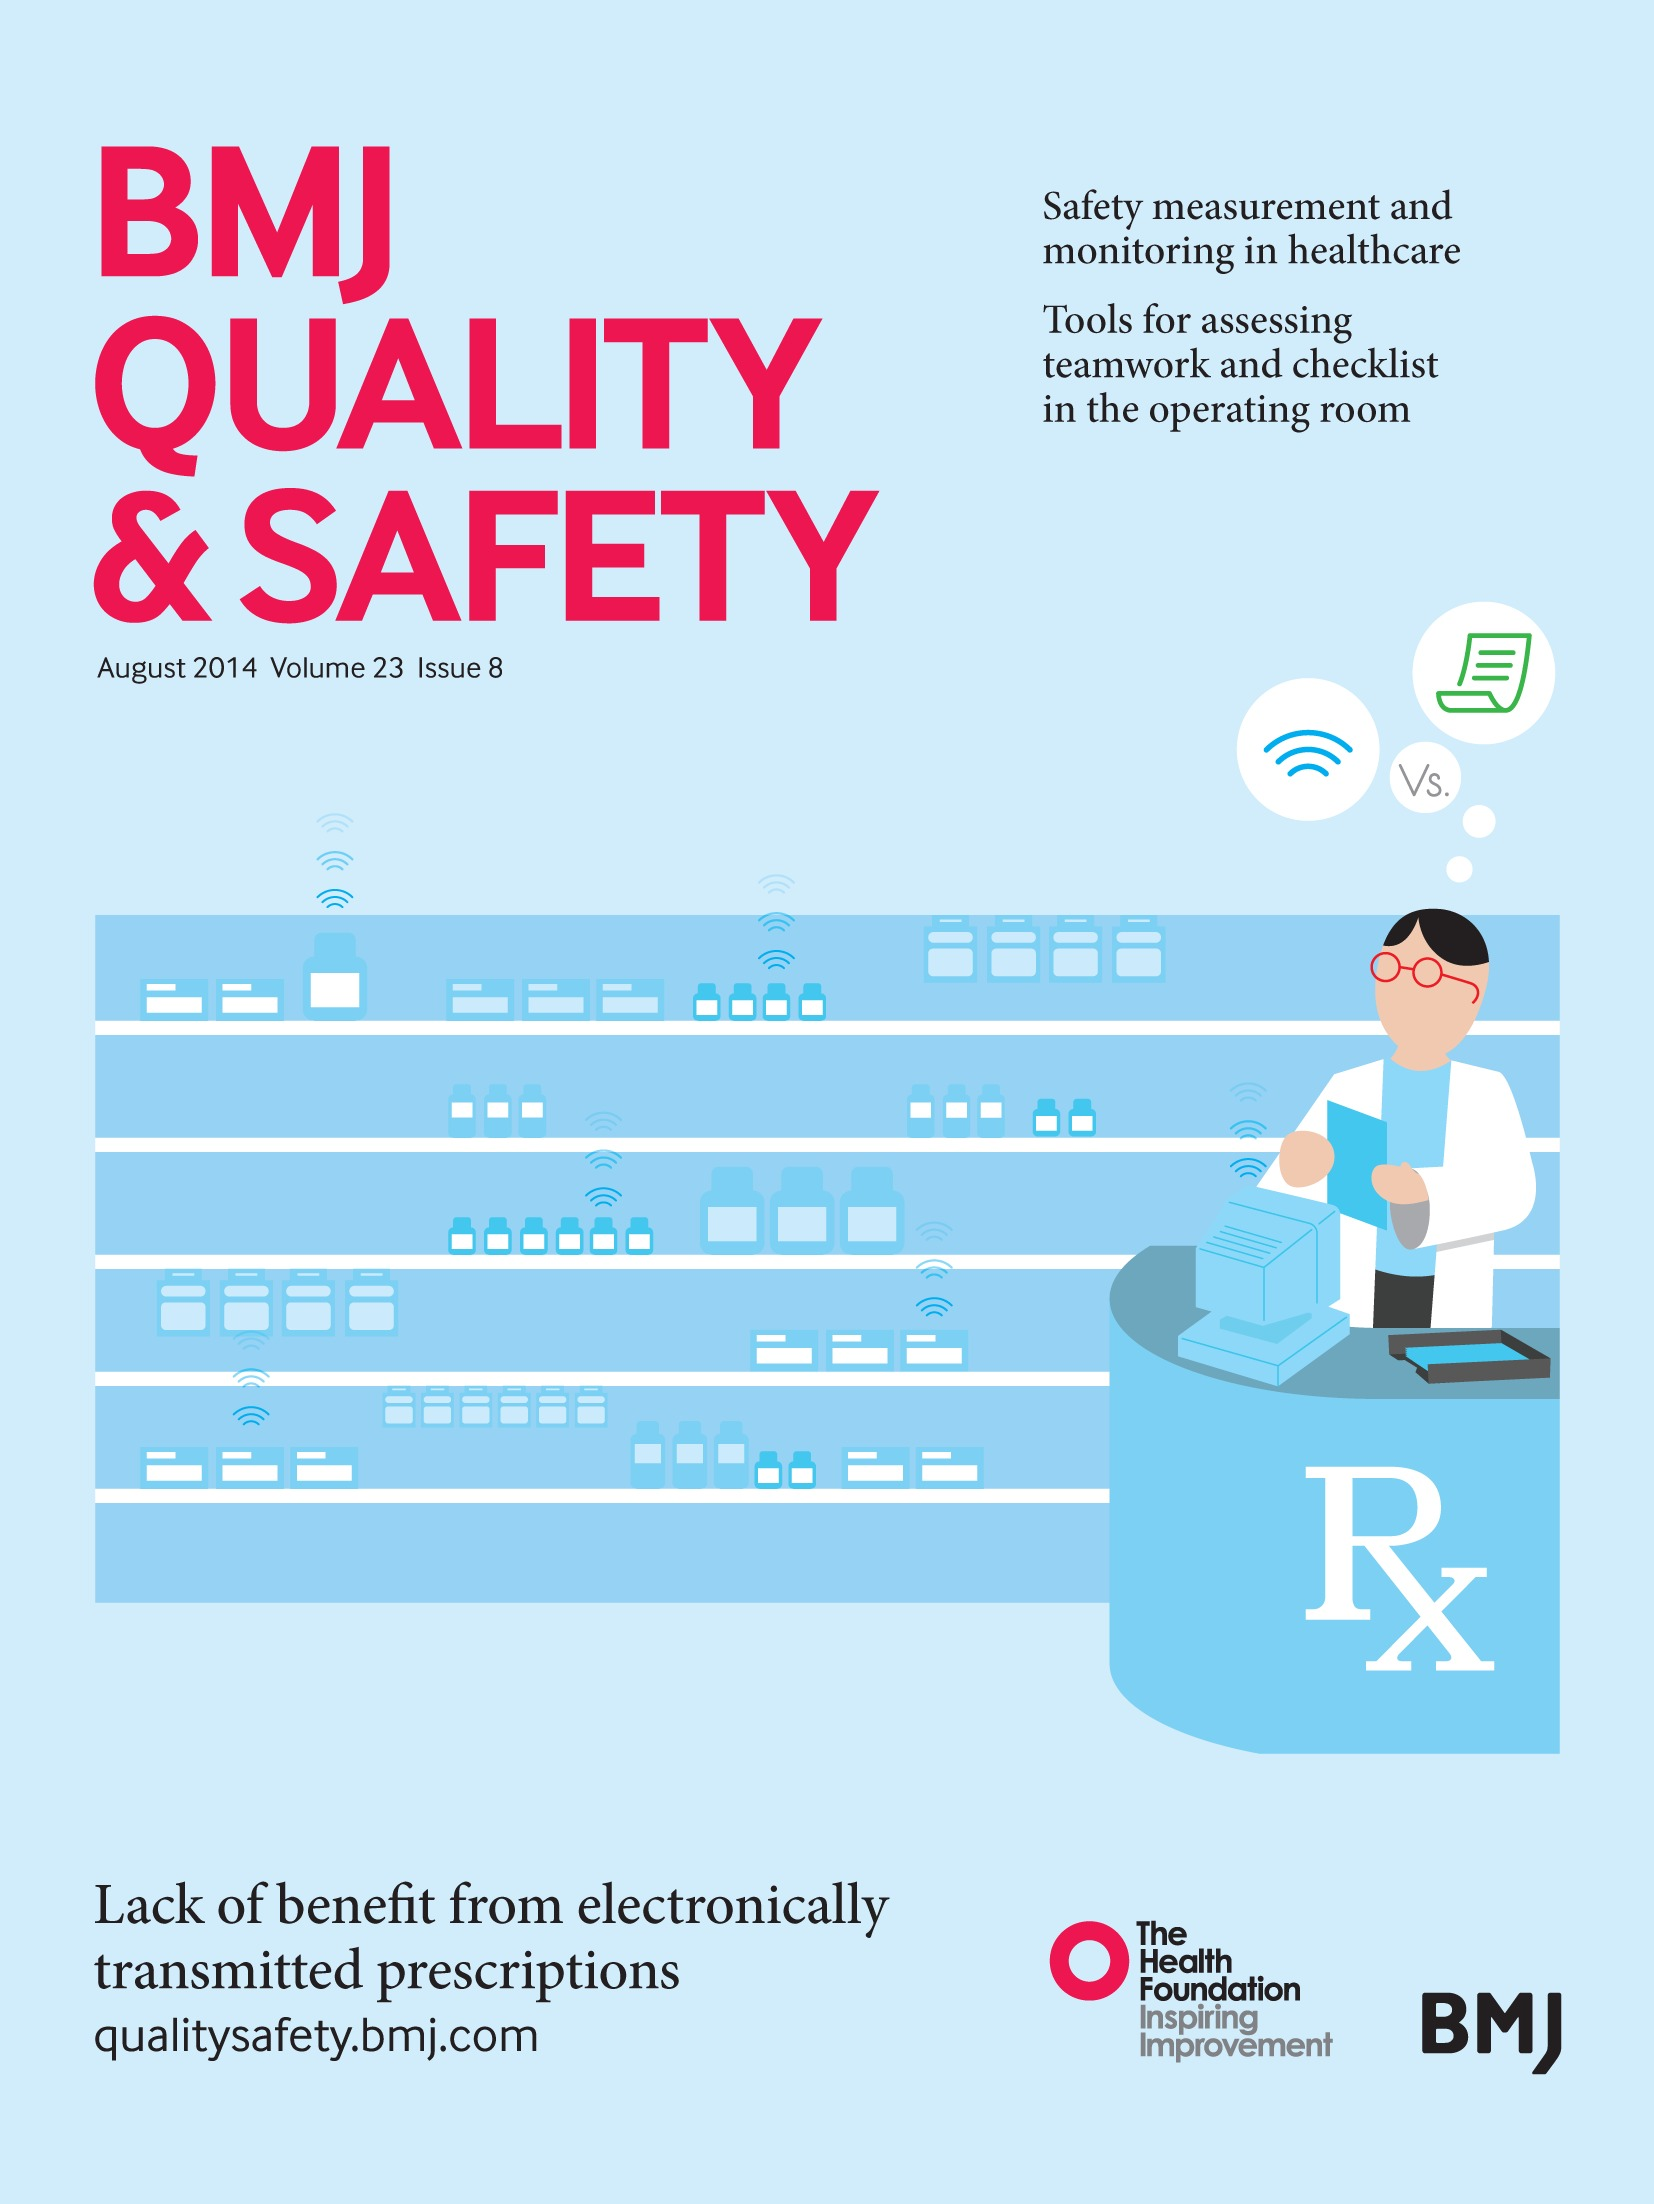 Safety Measurement And Monitoring In Healthcare A Framework To